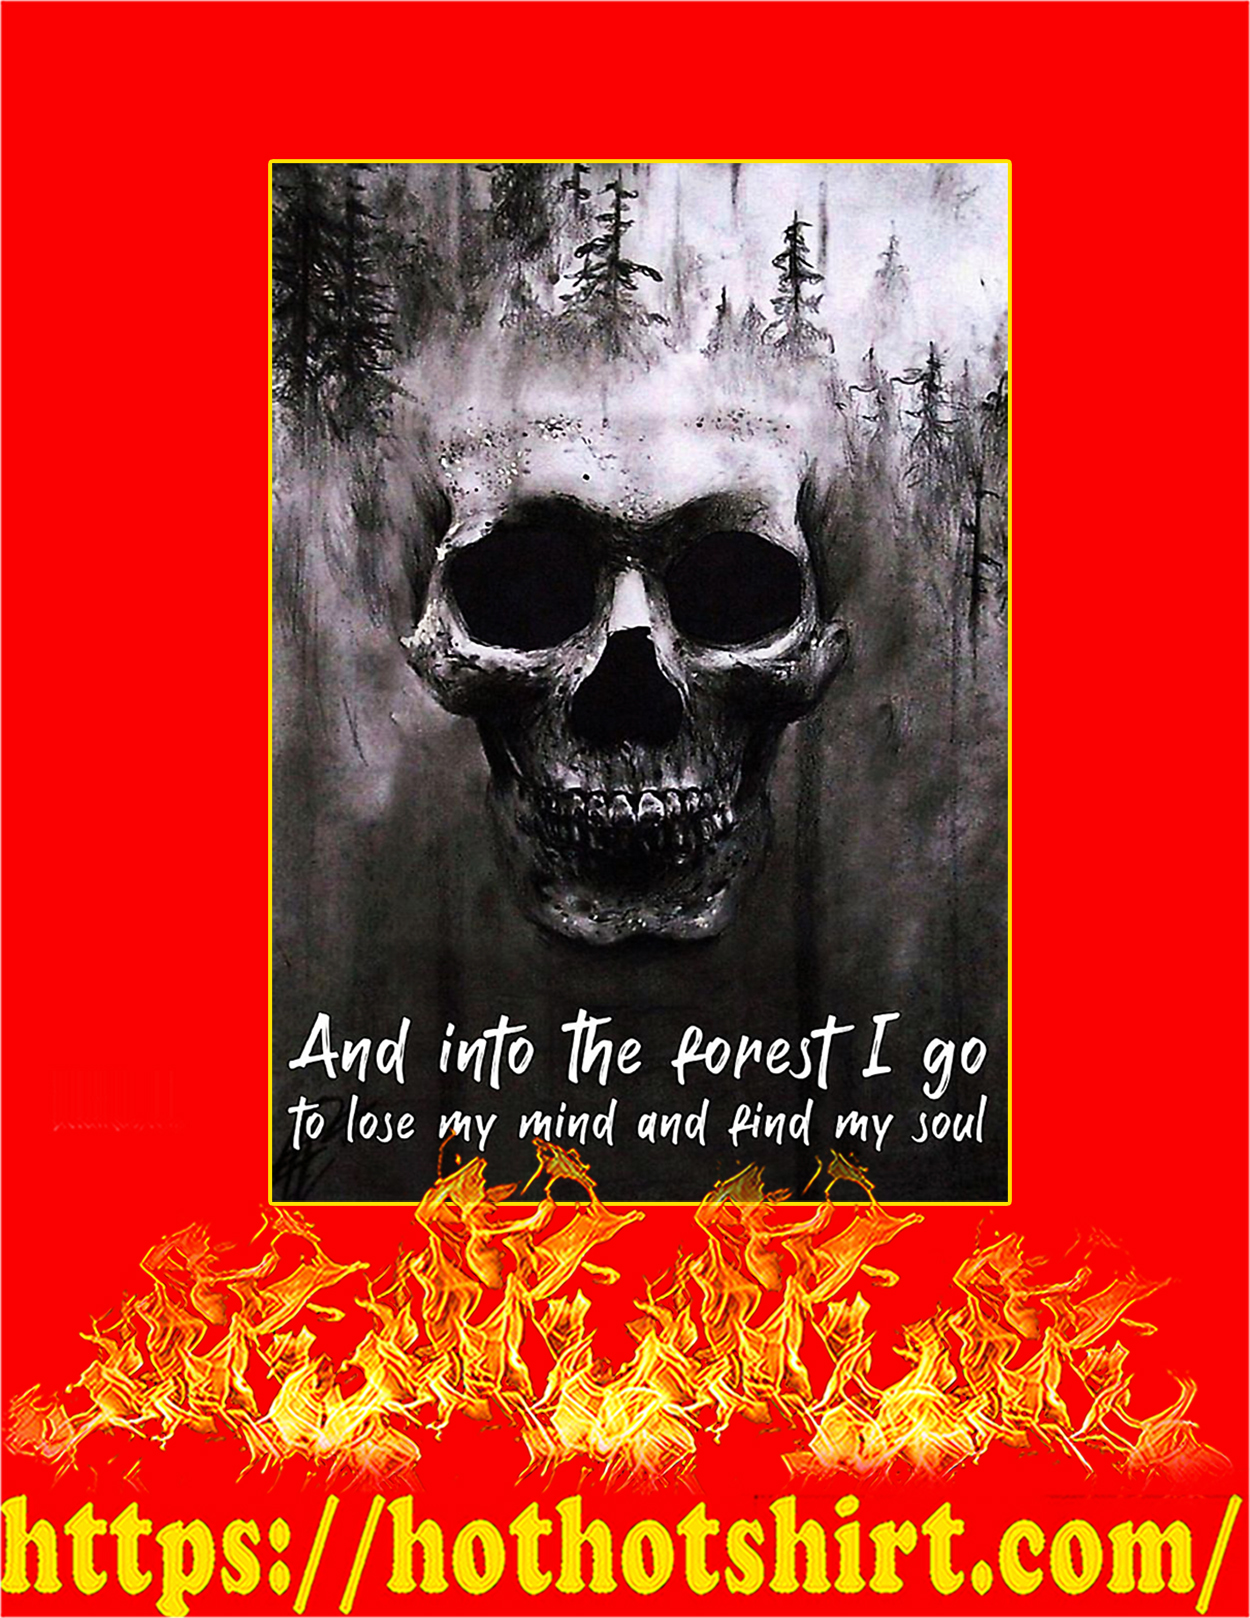 Skull and into the forest I go to lose my mind and find my soul poster - A3